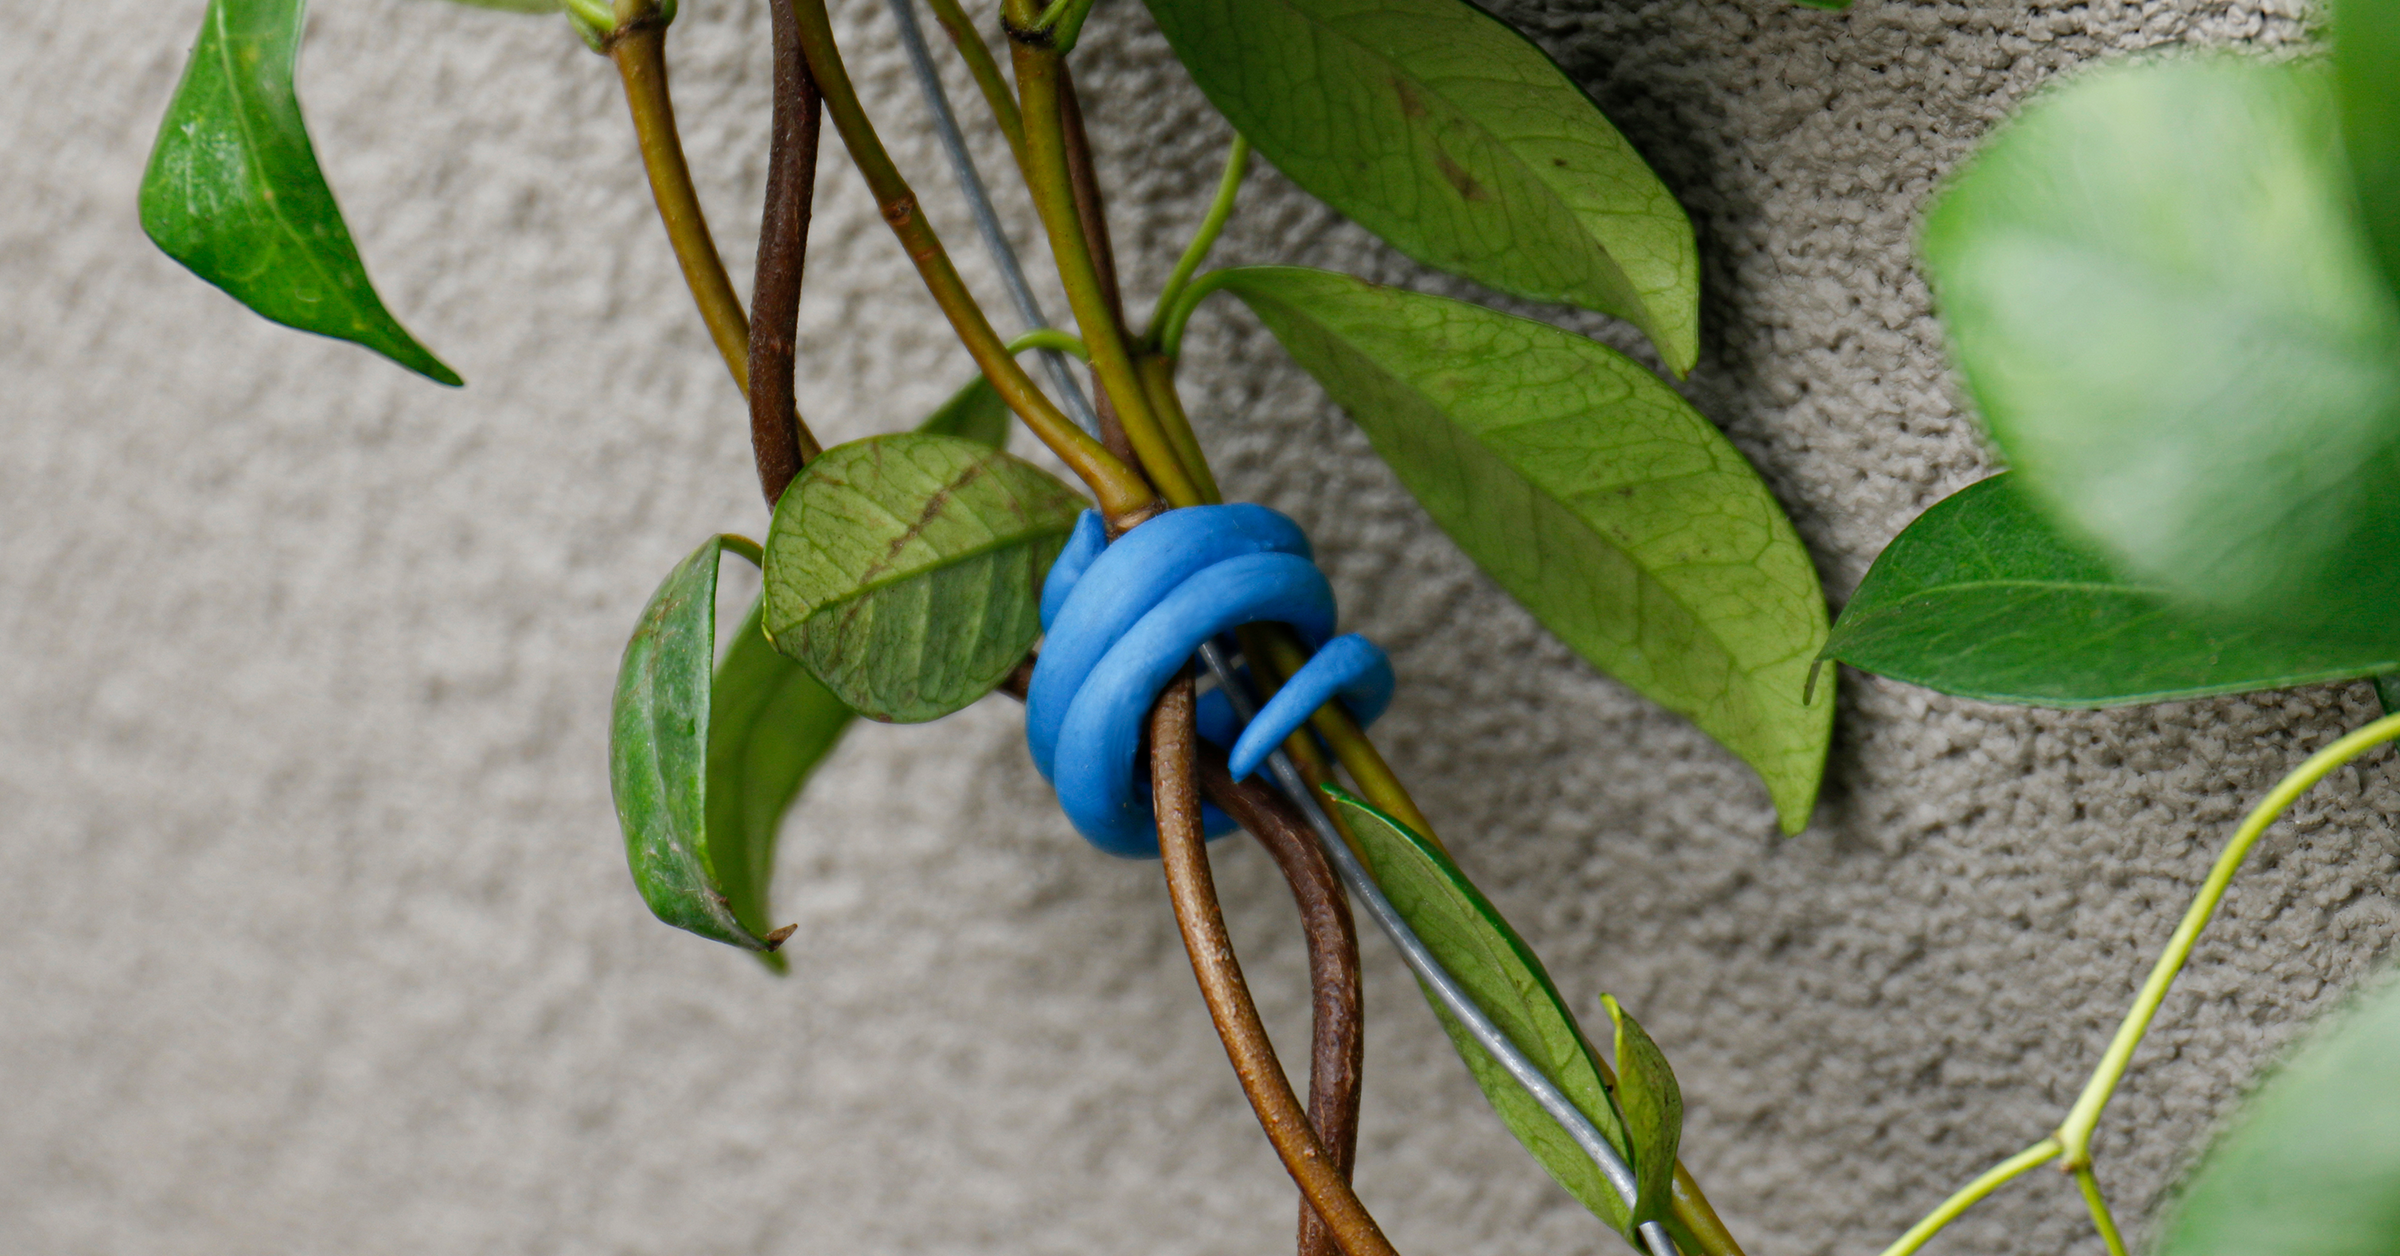 Sugru plant tie holding stems together